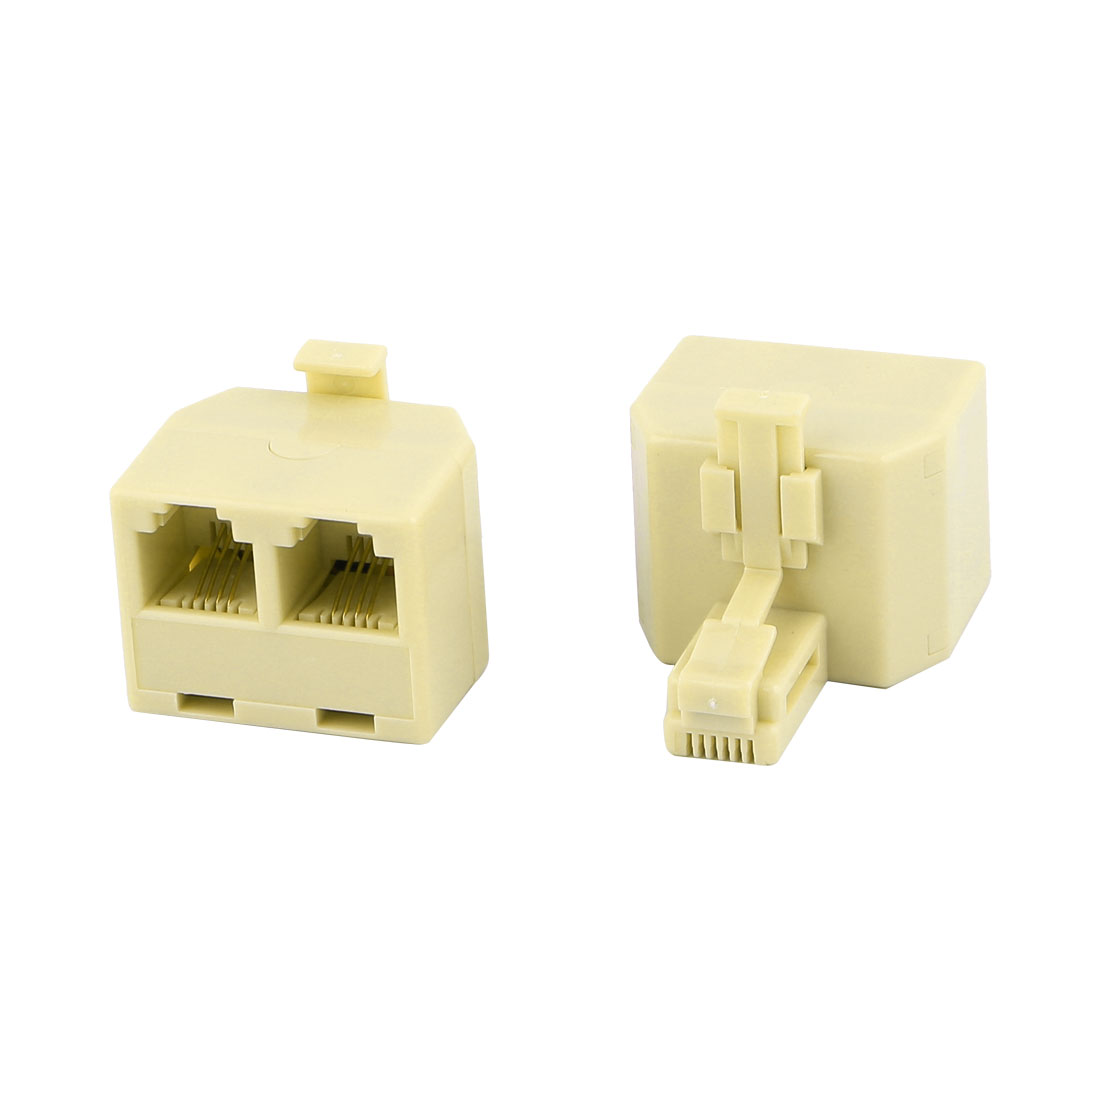 2 Female to Male RJ11 Telephone Cable Adapter 2 Pcs